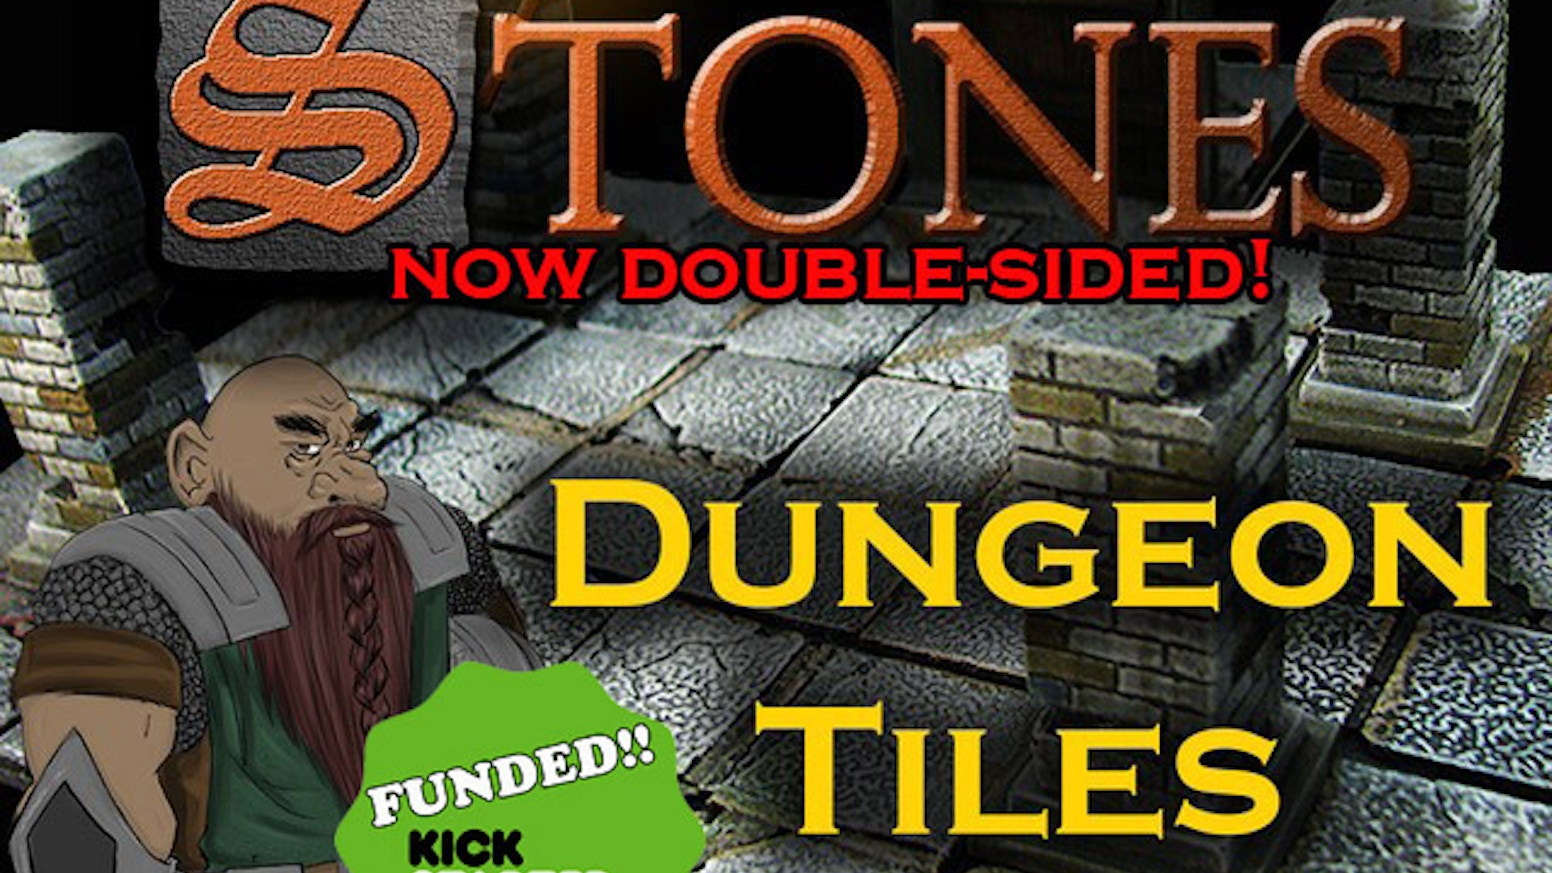 "Highly-detailed 2x2"" dungeon tiles made of a durable polymer-plastic & VERY affordable cost. Perfect for tabletop & role-playing games.Available now! http://frontline-games.com/en/37-stones-dungeon-tiles"